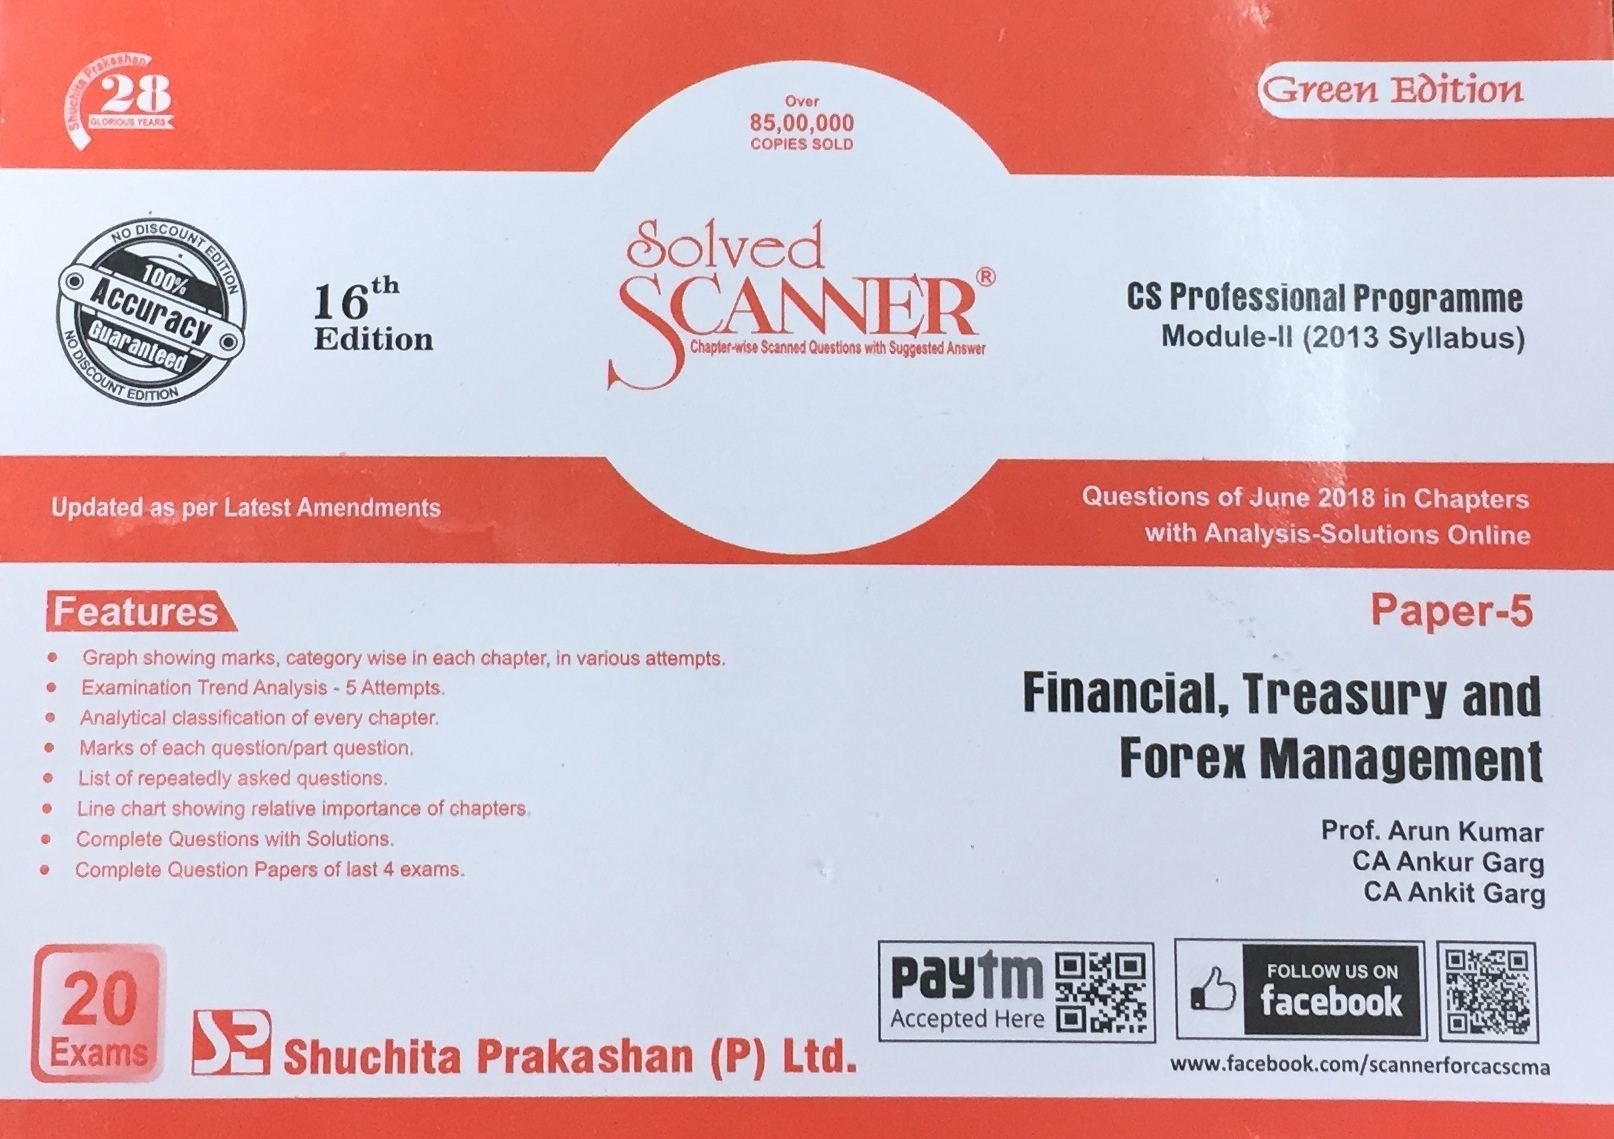 Shuchita Financial, Treasury and Forex Management Solved Scanner for Dec 2018 Exam for CS Professional Programme Module-II (New Syllabus) Paper 5 Green Edition by Prof. Arun KumarCA Ankur Garg and CA Ankit Garg (Shuchita Prakashan) Edition 16th 2018